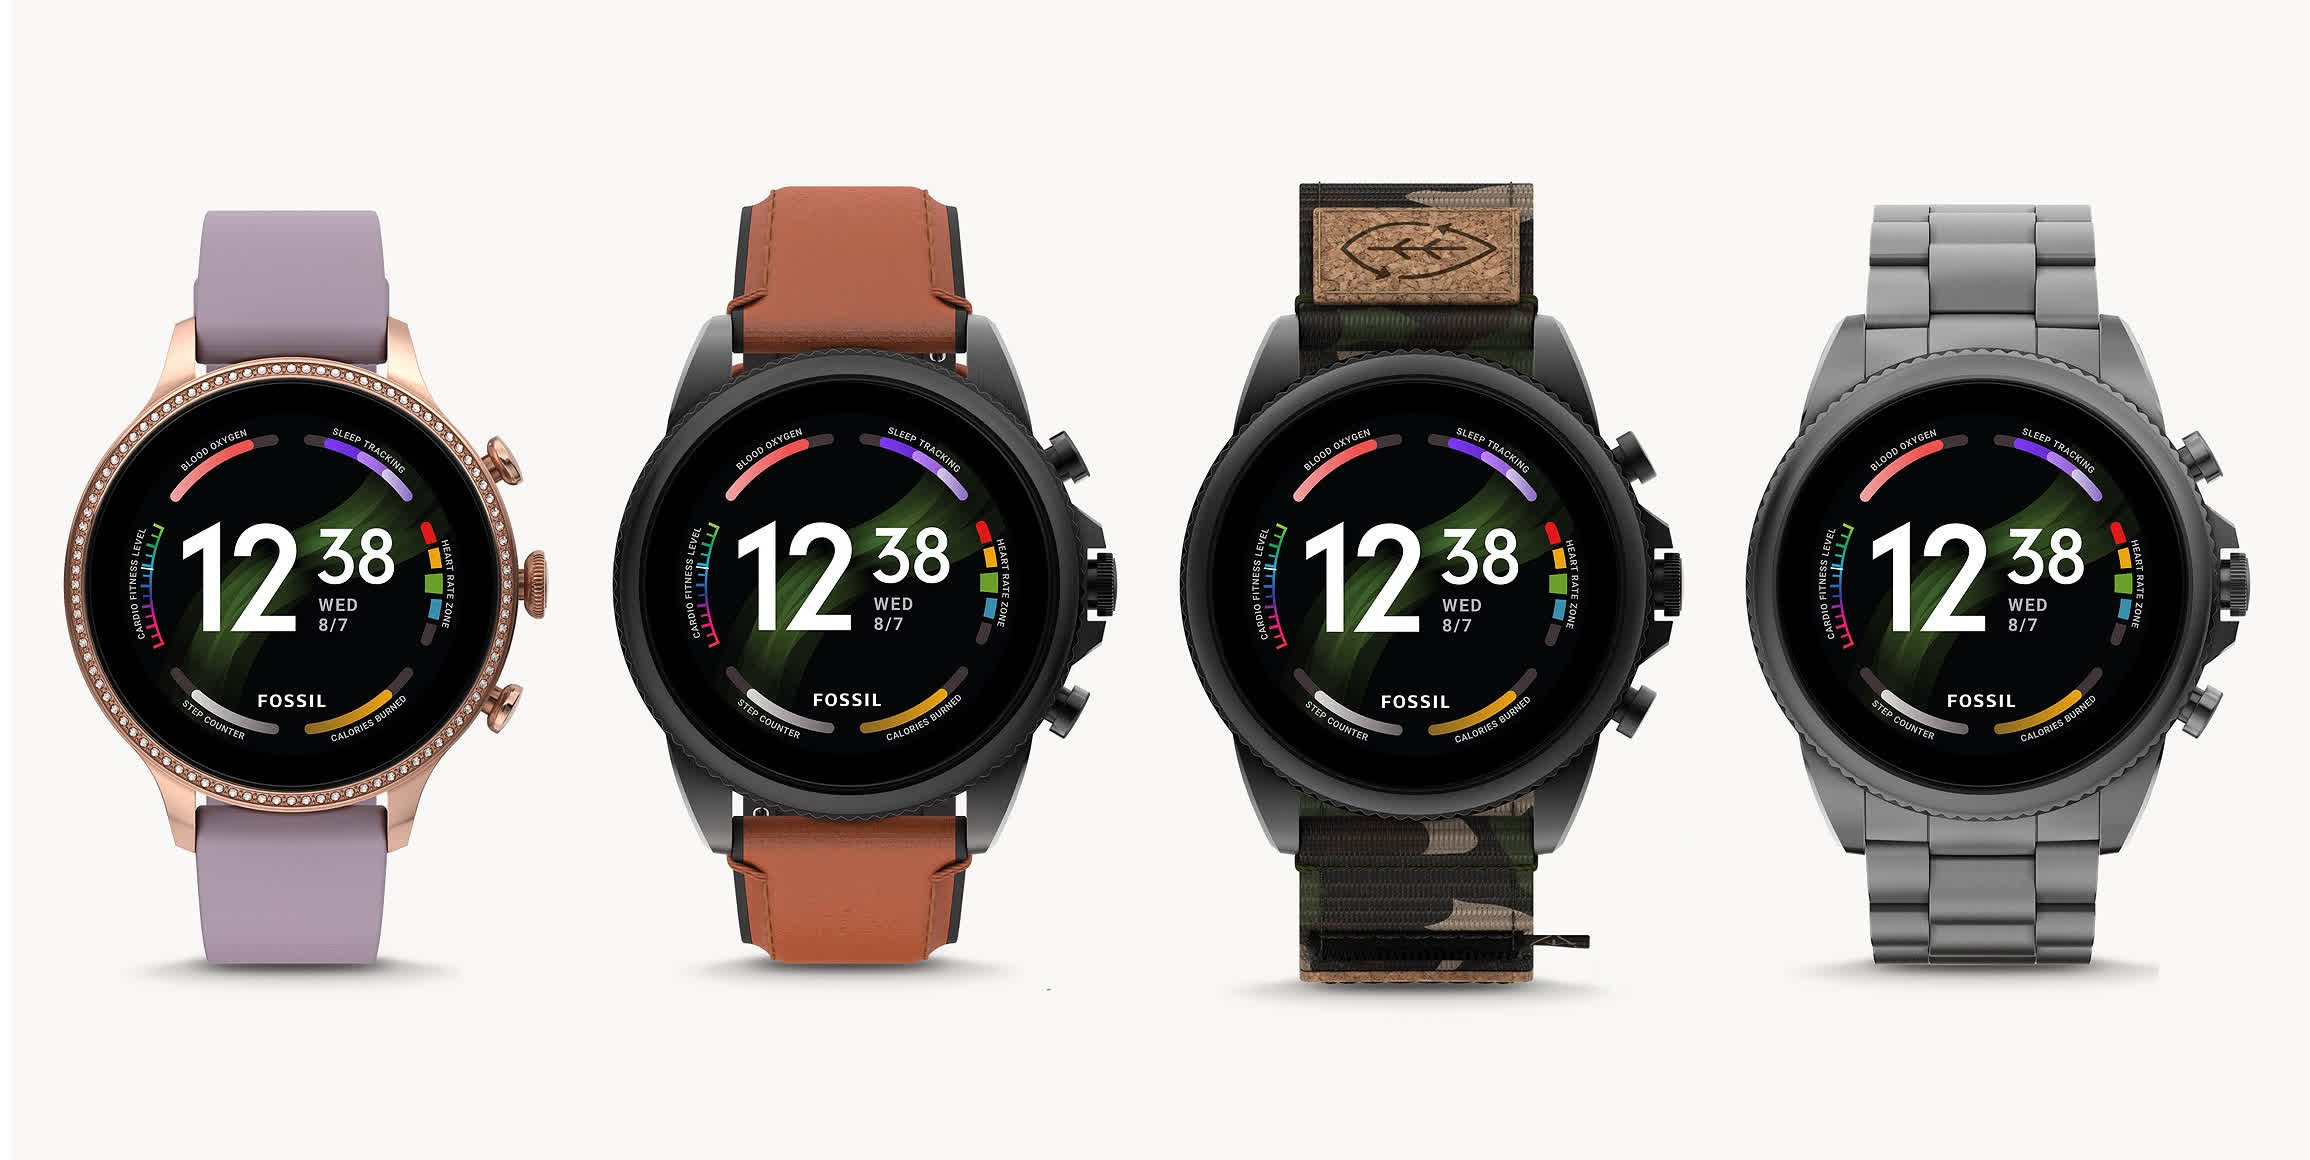 Fossil Gen 6 smartwatches are coming, but they won't feature Wear OS 3 at launch